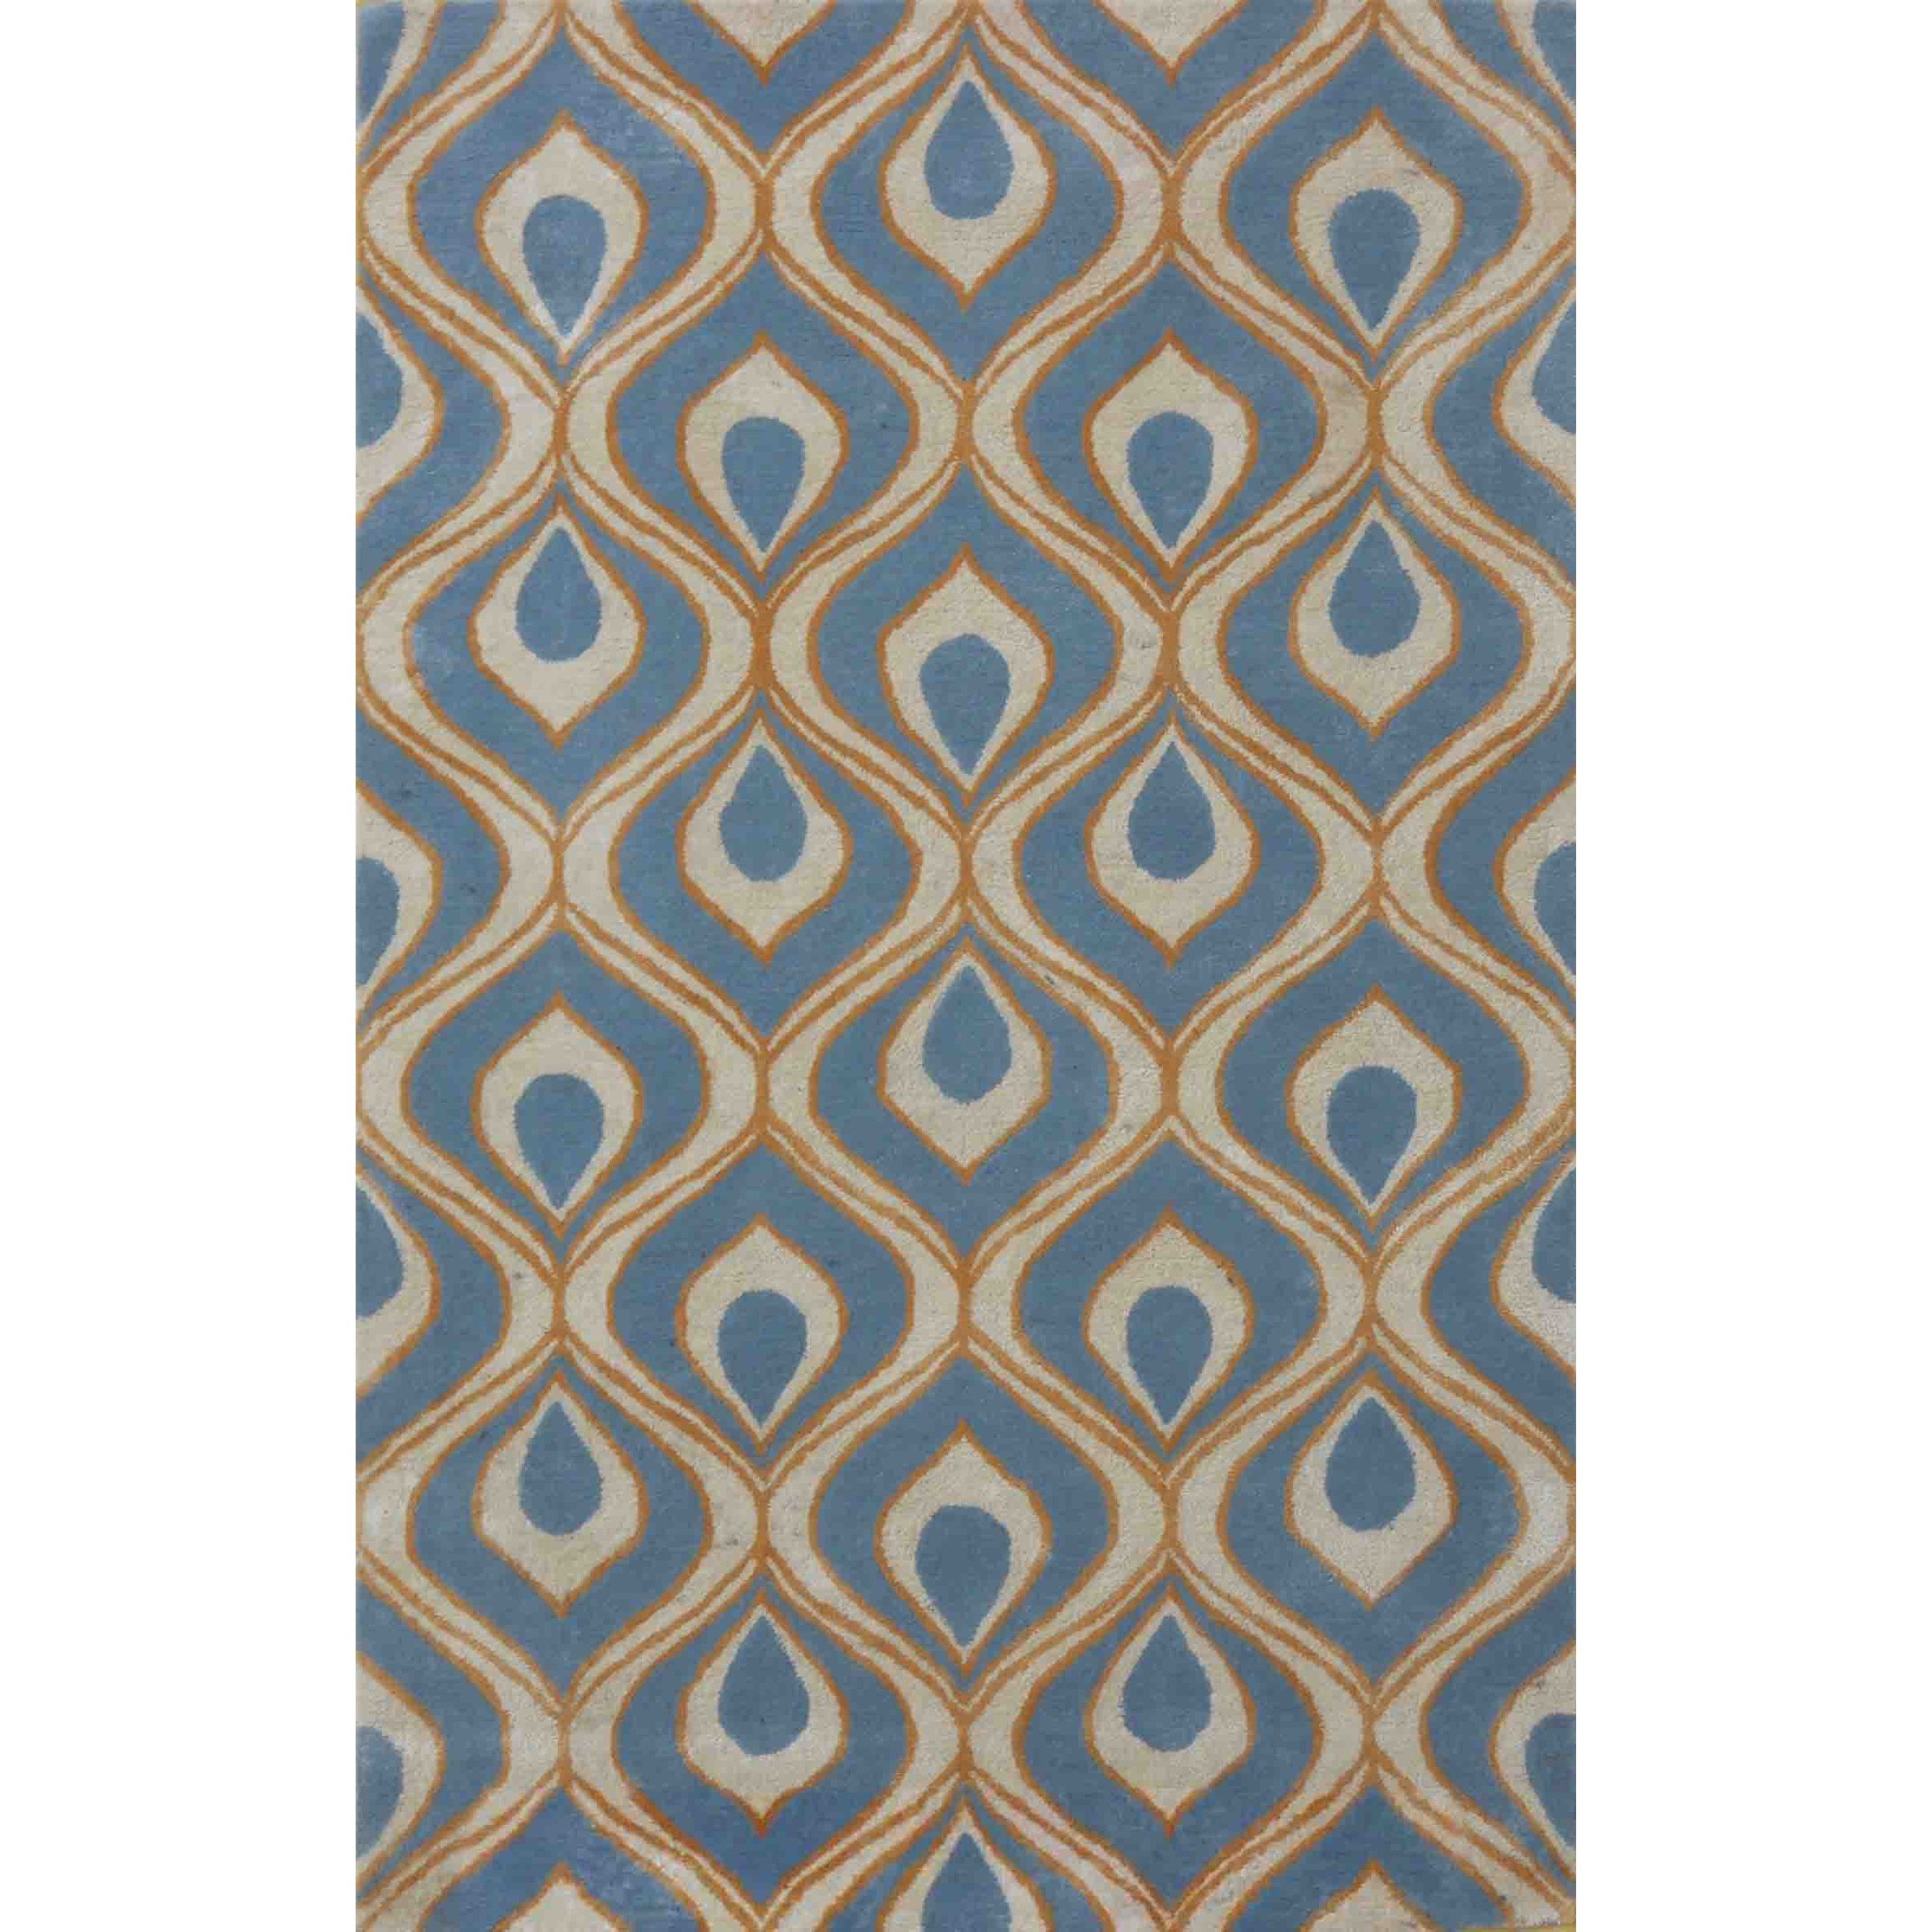 Bob Mackie Home 8' X 11' Blue Eye Of The Peacock Area Rug by Kas at Darvin Furniture